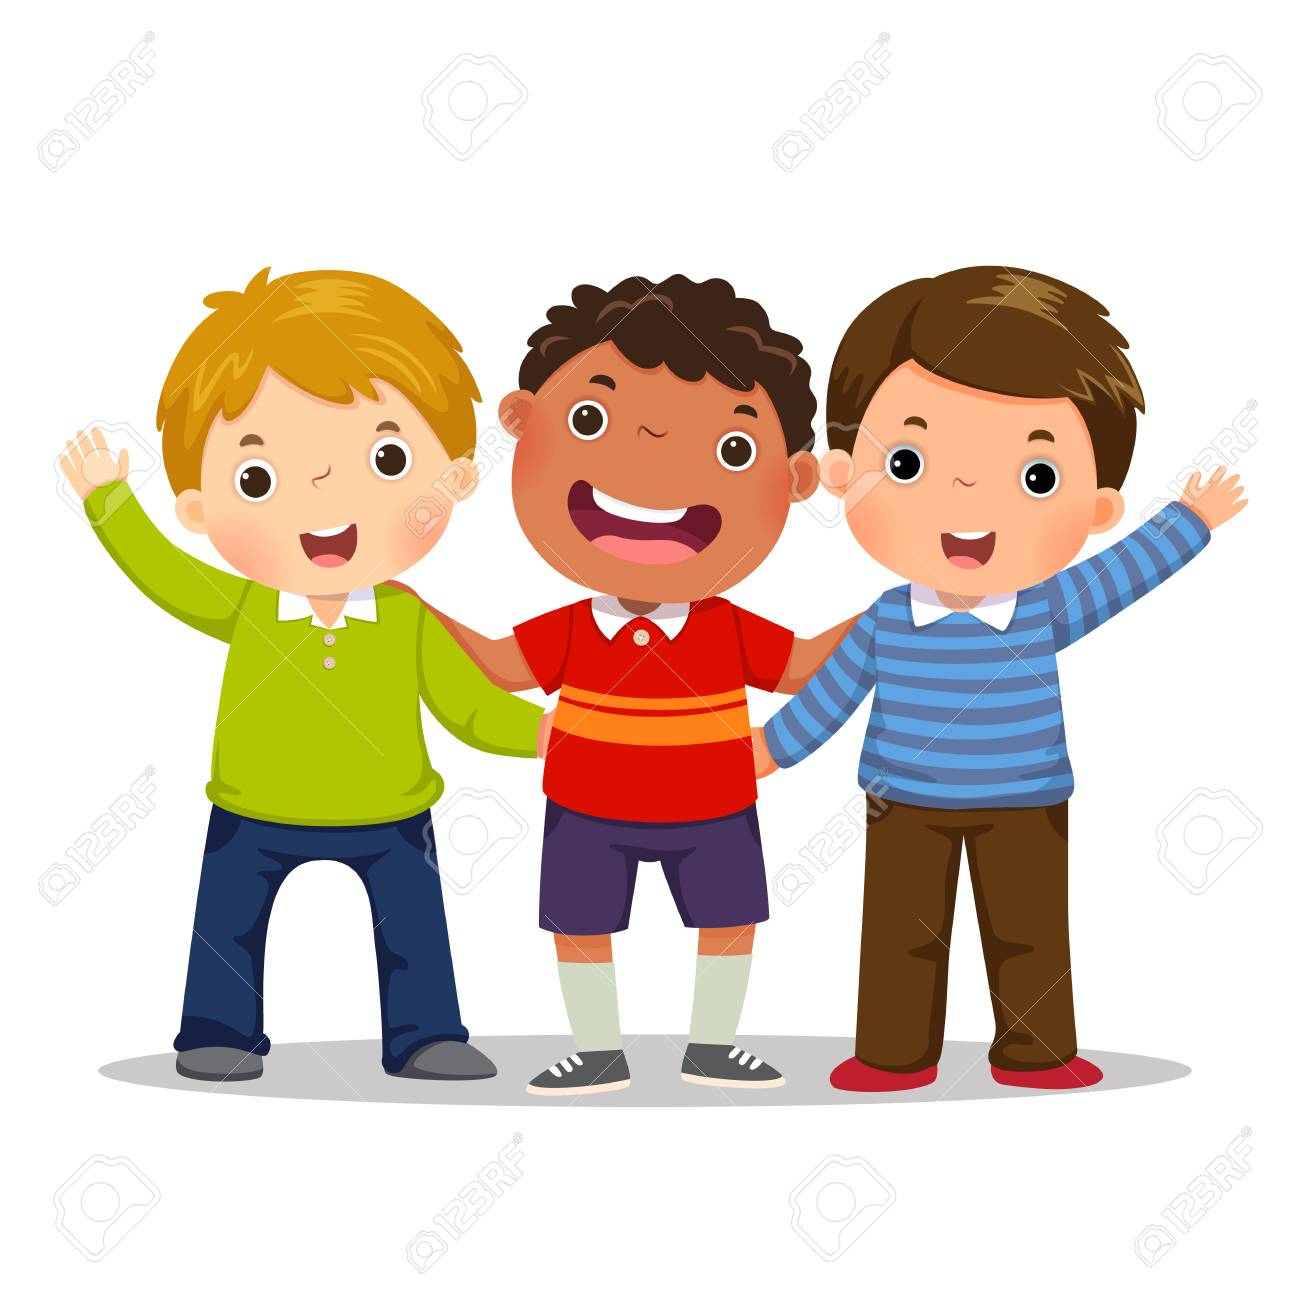 group of boys clipart #7